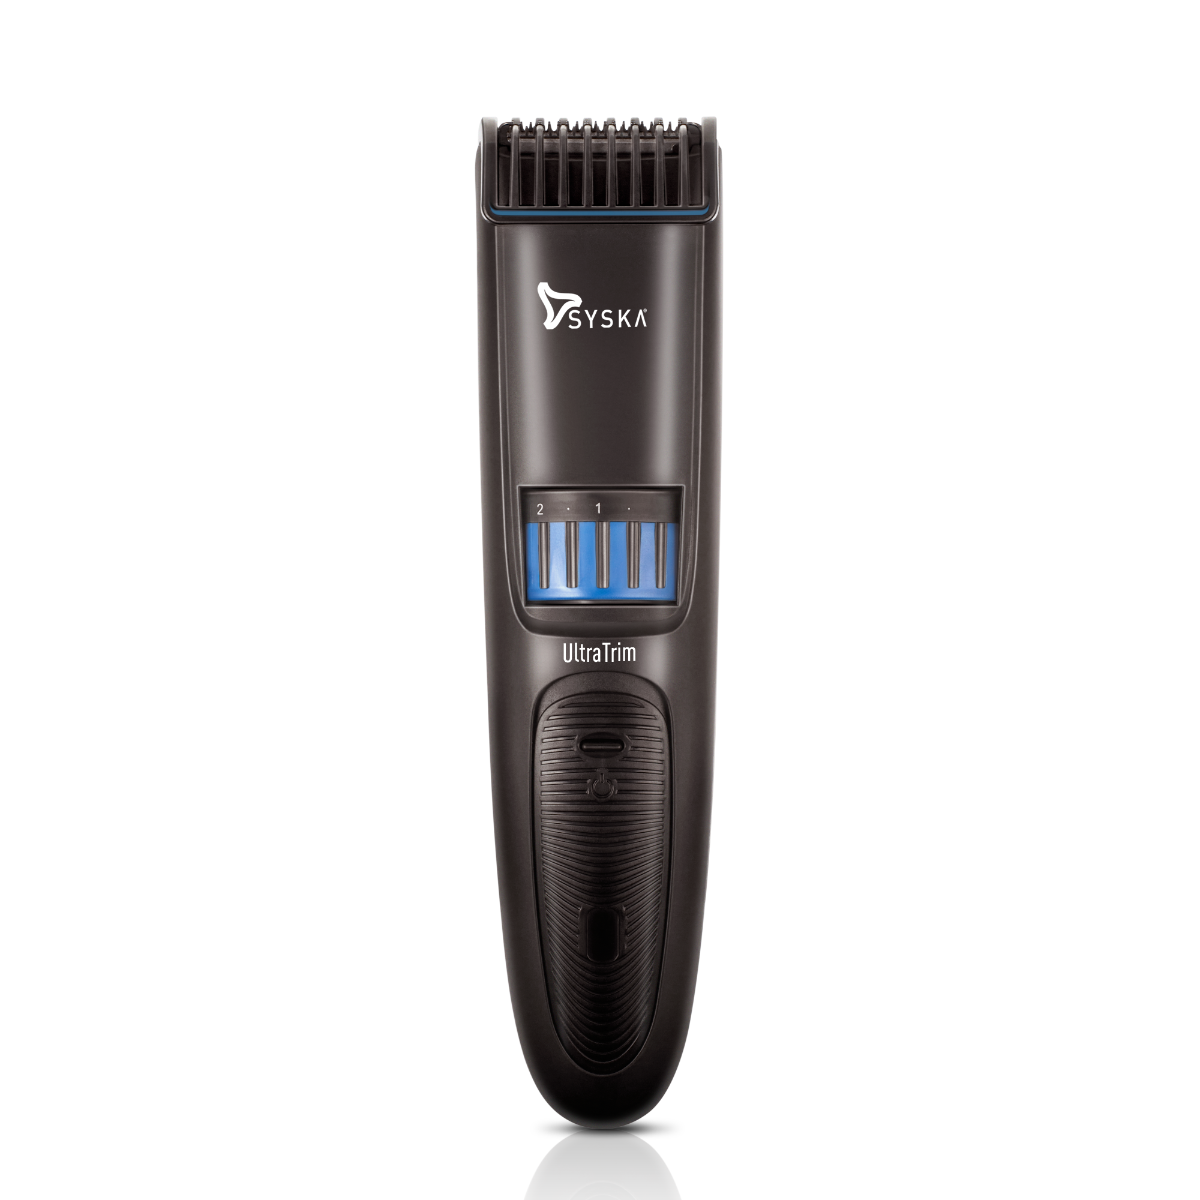 Syska UltraTrim Beard Trimmer HT500 with USB Charging